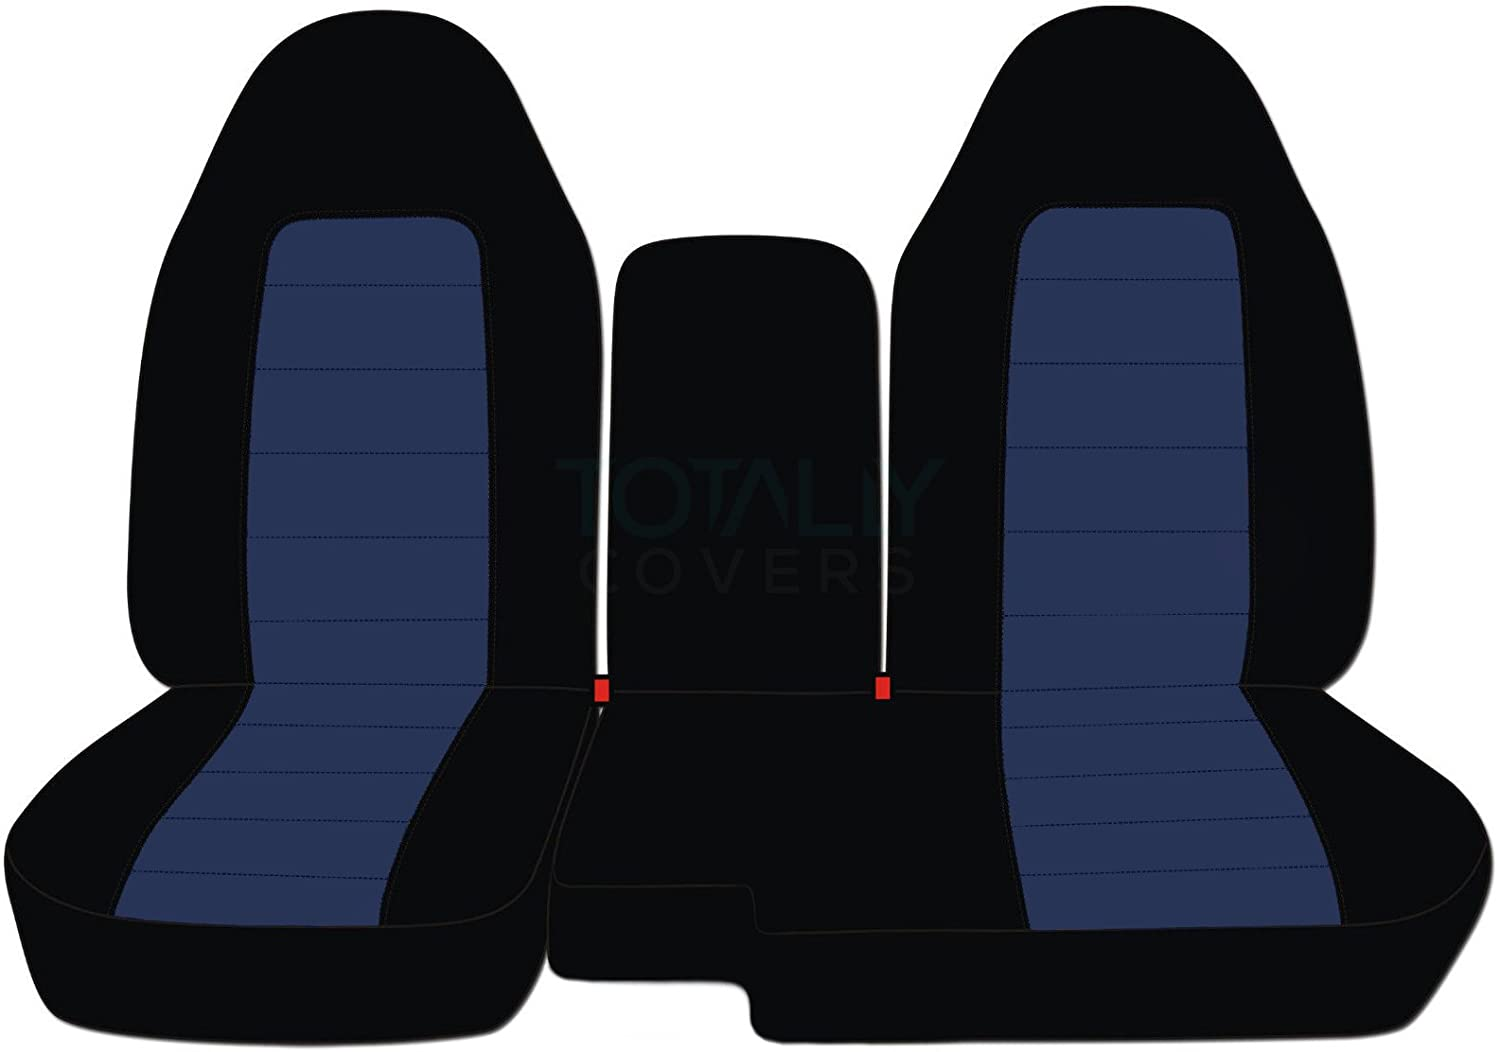 Totally Covers Compatible with 2004-2012 Ford Ranger/Mazda B-Series Two-Tone Truck Seat Covers (60/40 Split Bench) w Center Armrest/Console Cover: Black & Navy Blue (21 Colors)